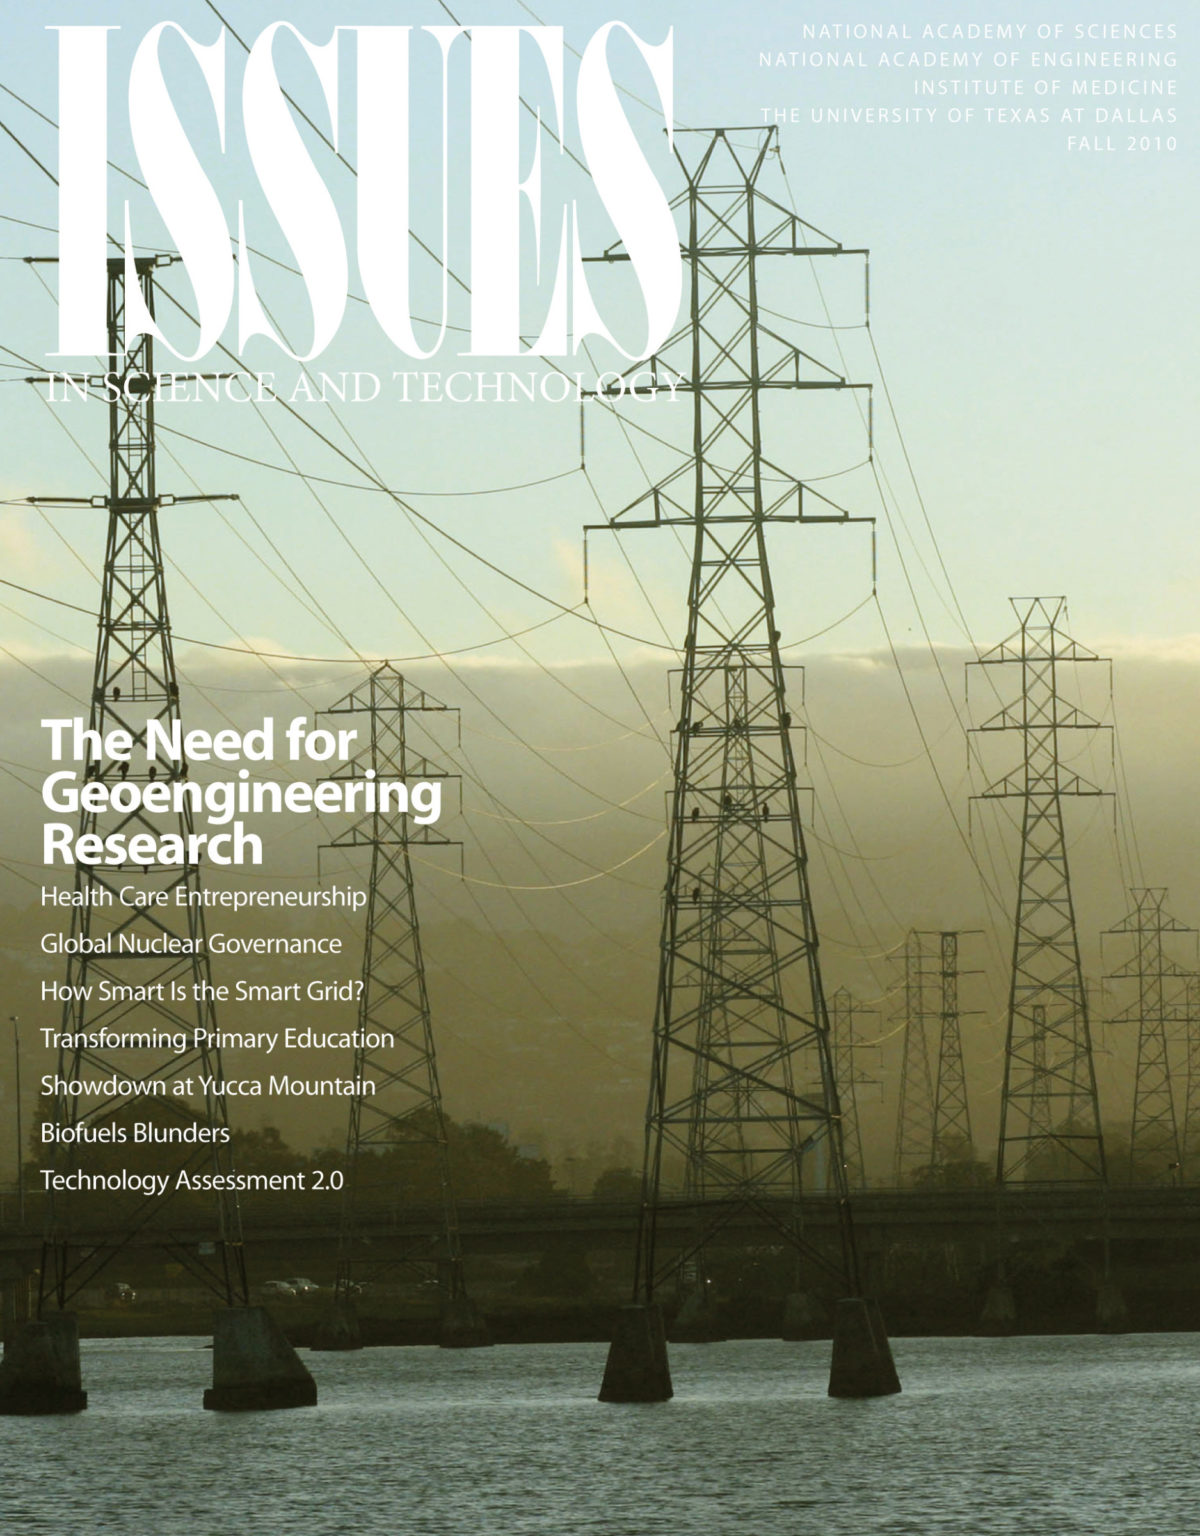 Issues Fall 2010 The Need for Geoengineering Research Cover